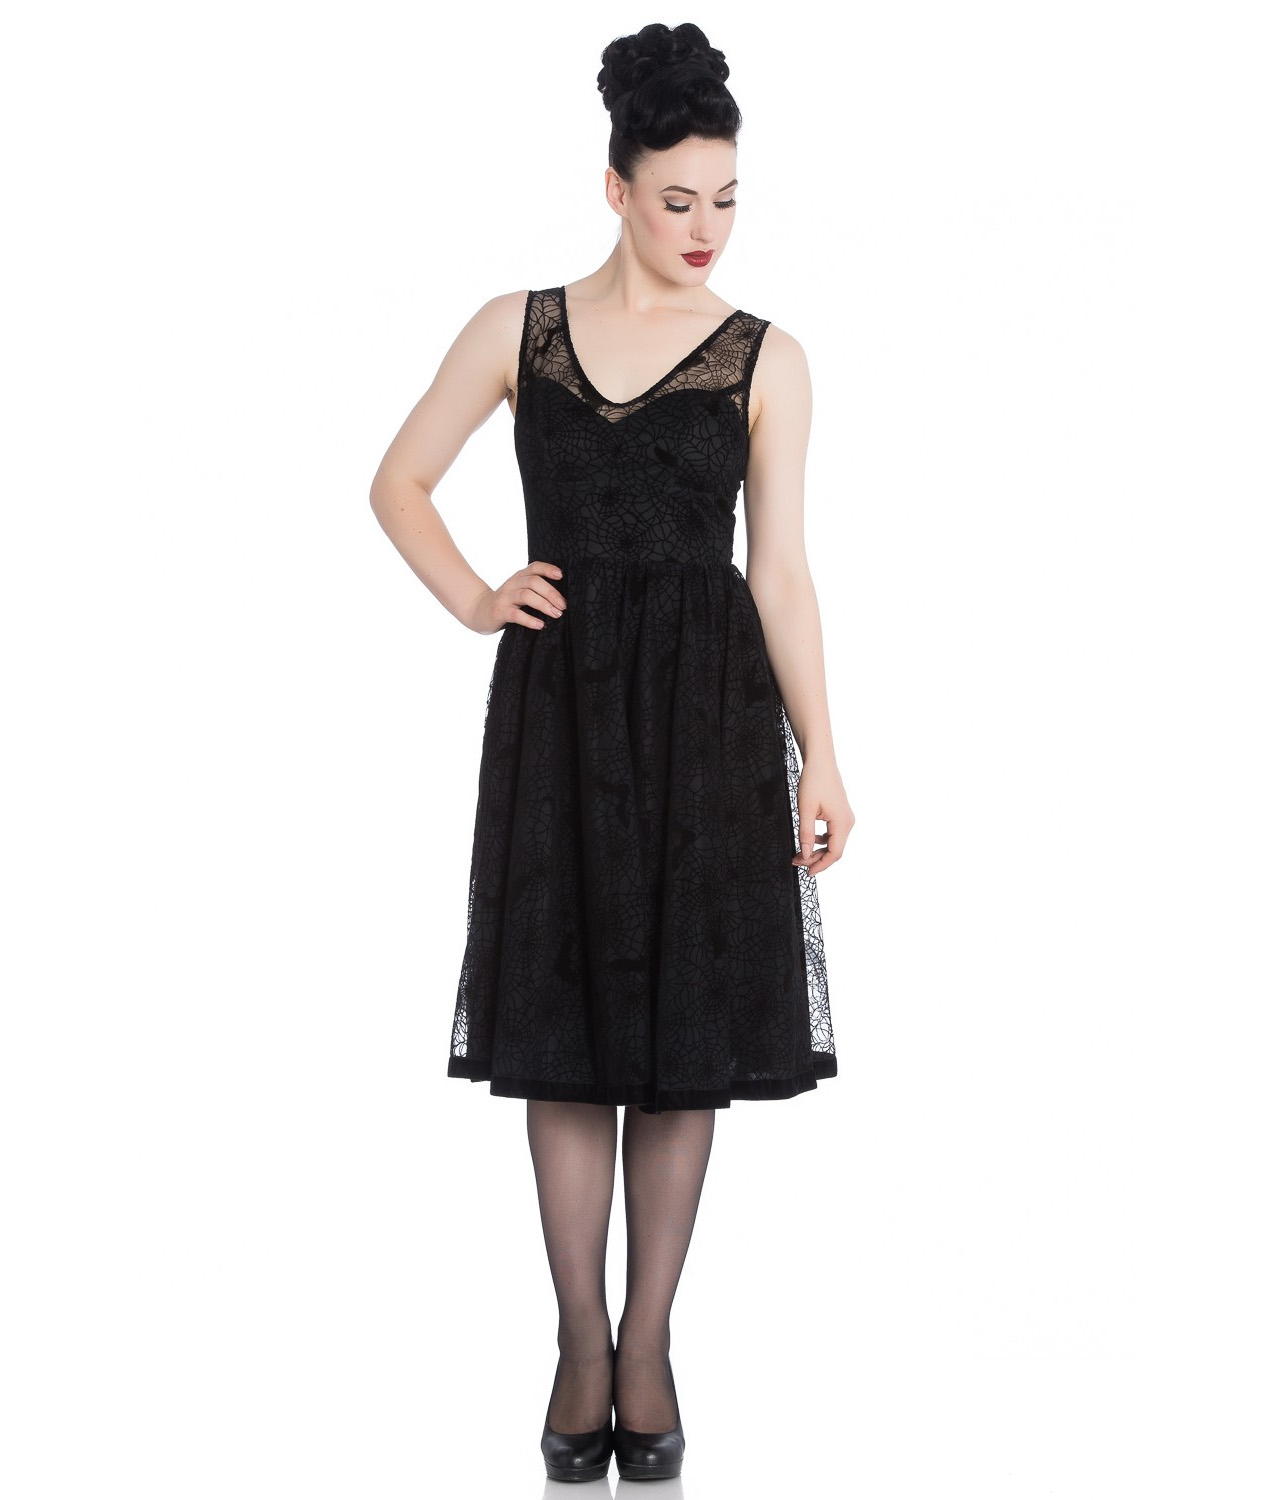 Hell-Bunny-50s-Black-Gothic-Net-Dress-Witchy-AMARANDE-Spiders-Bats-All-Sizes thumbnail 3